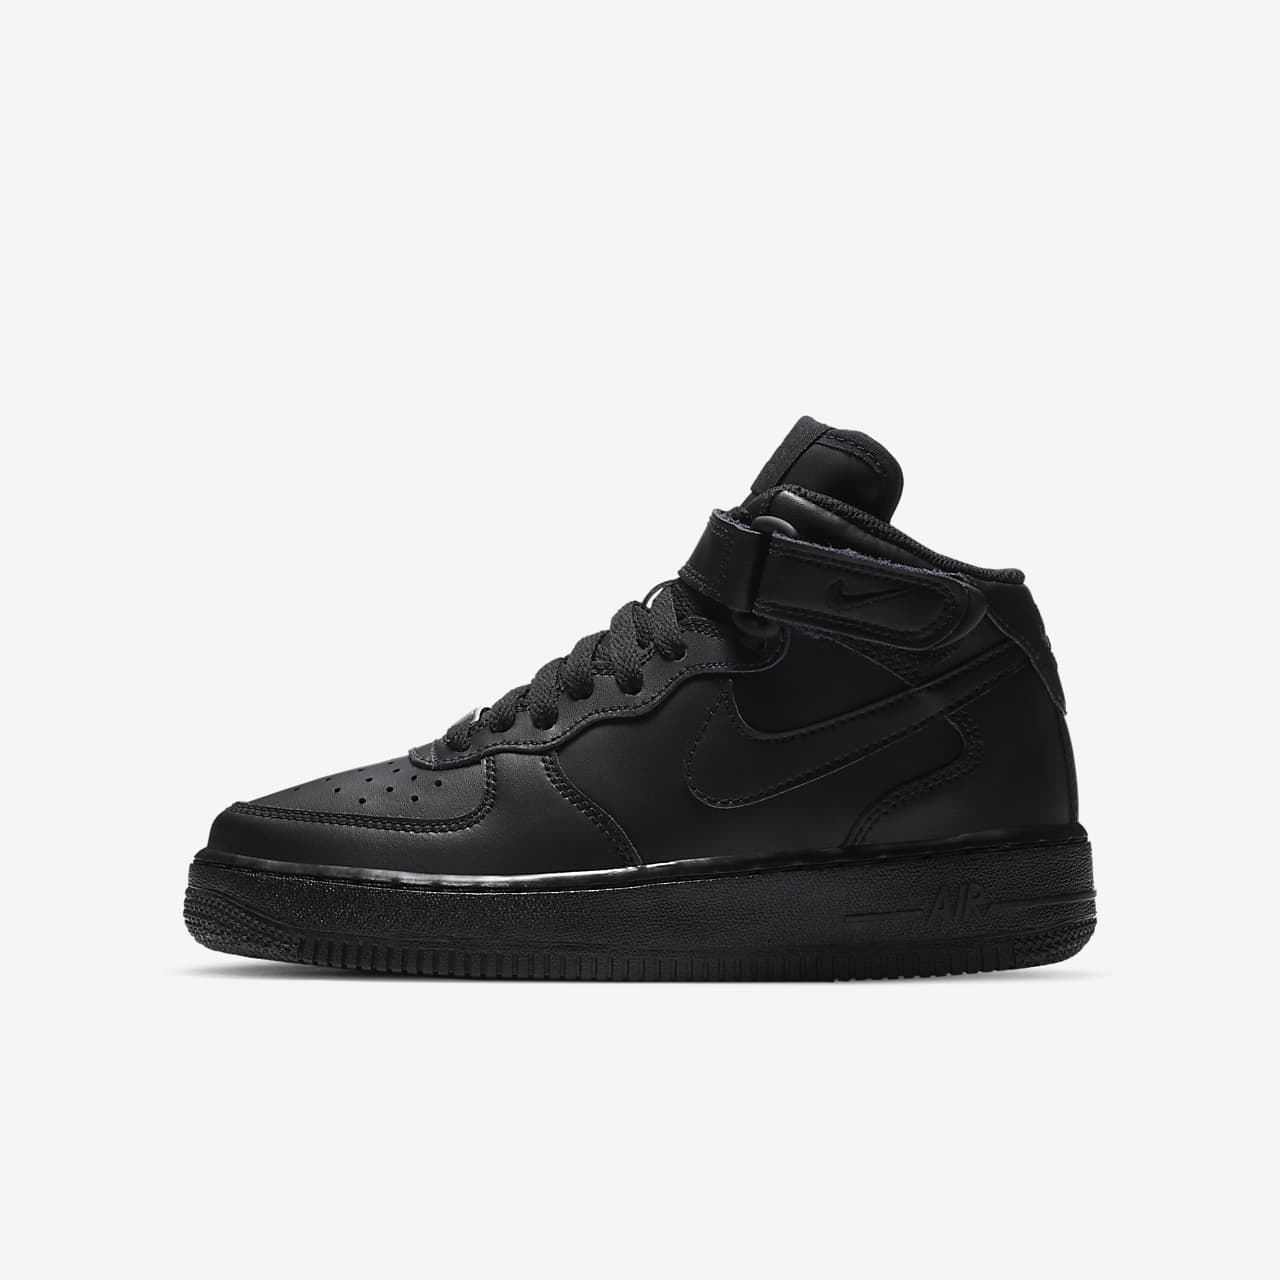 énorme réduction 732a7 b09e7 Nike Air Force 1 Mid 06 Big Kids' Shoe